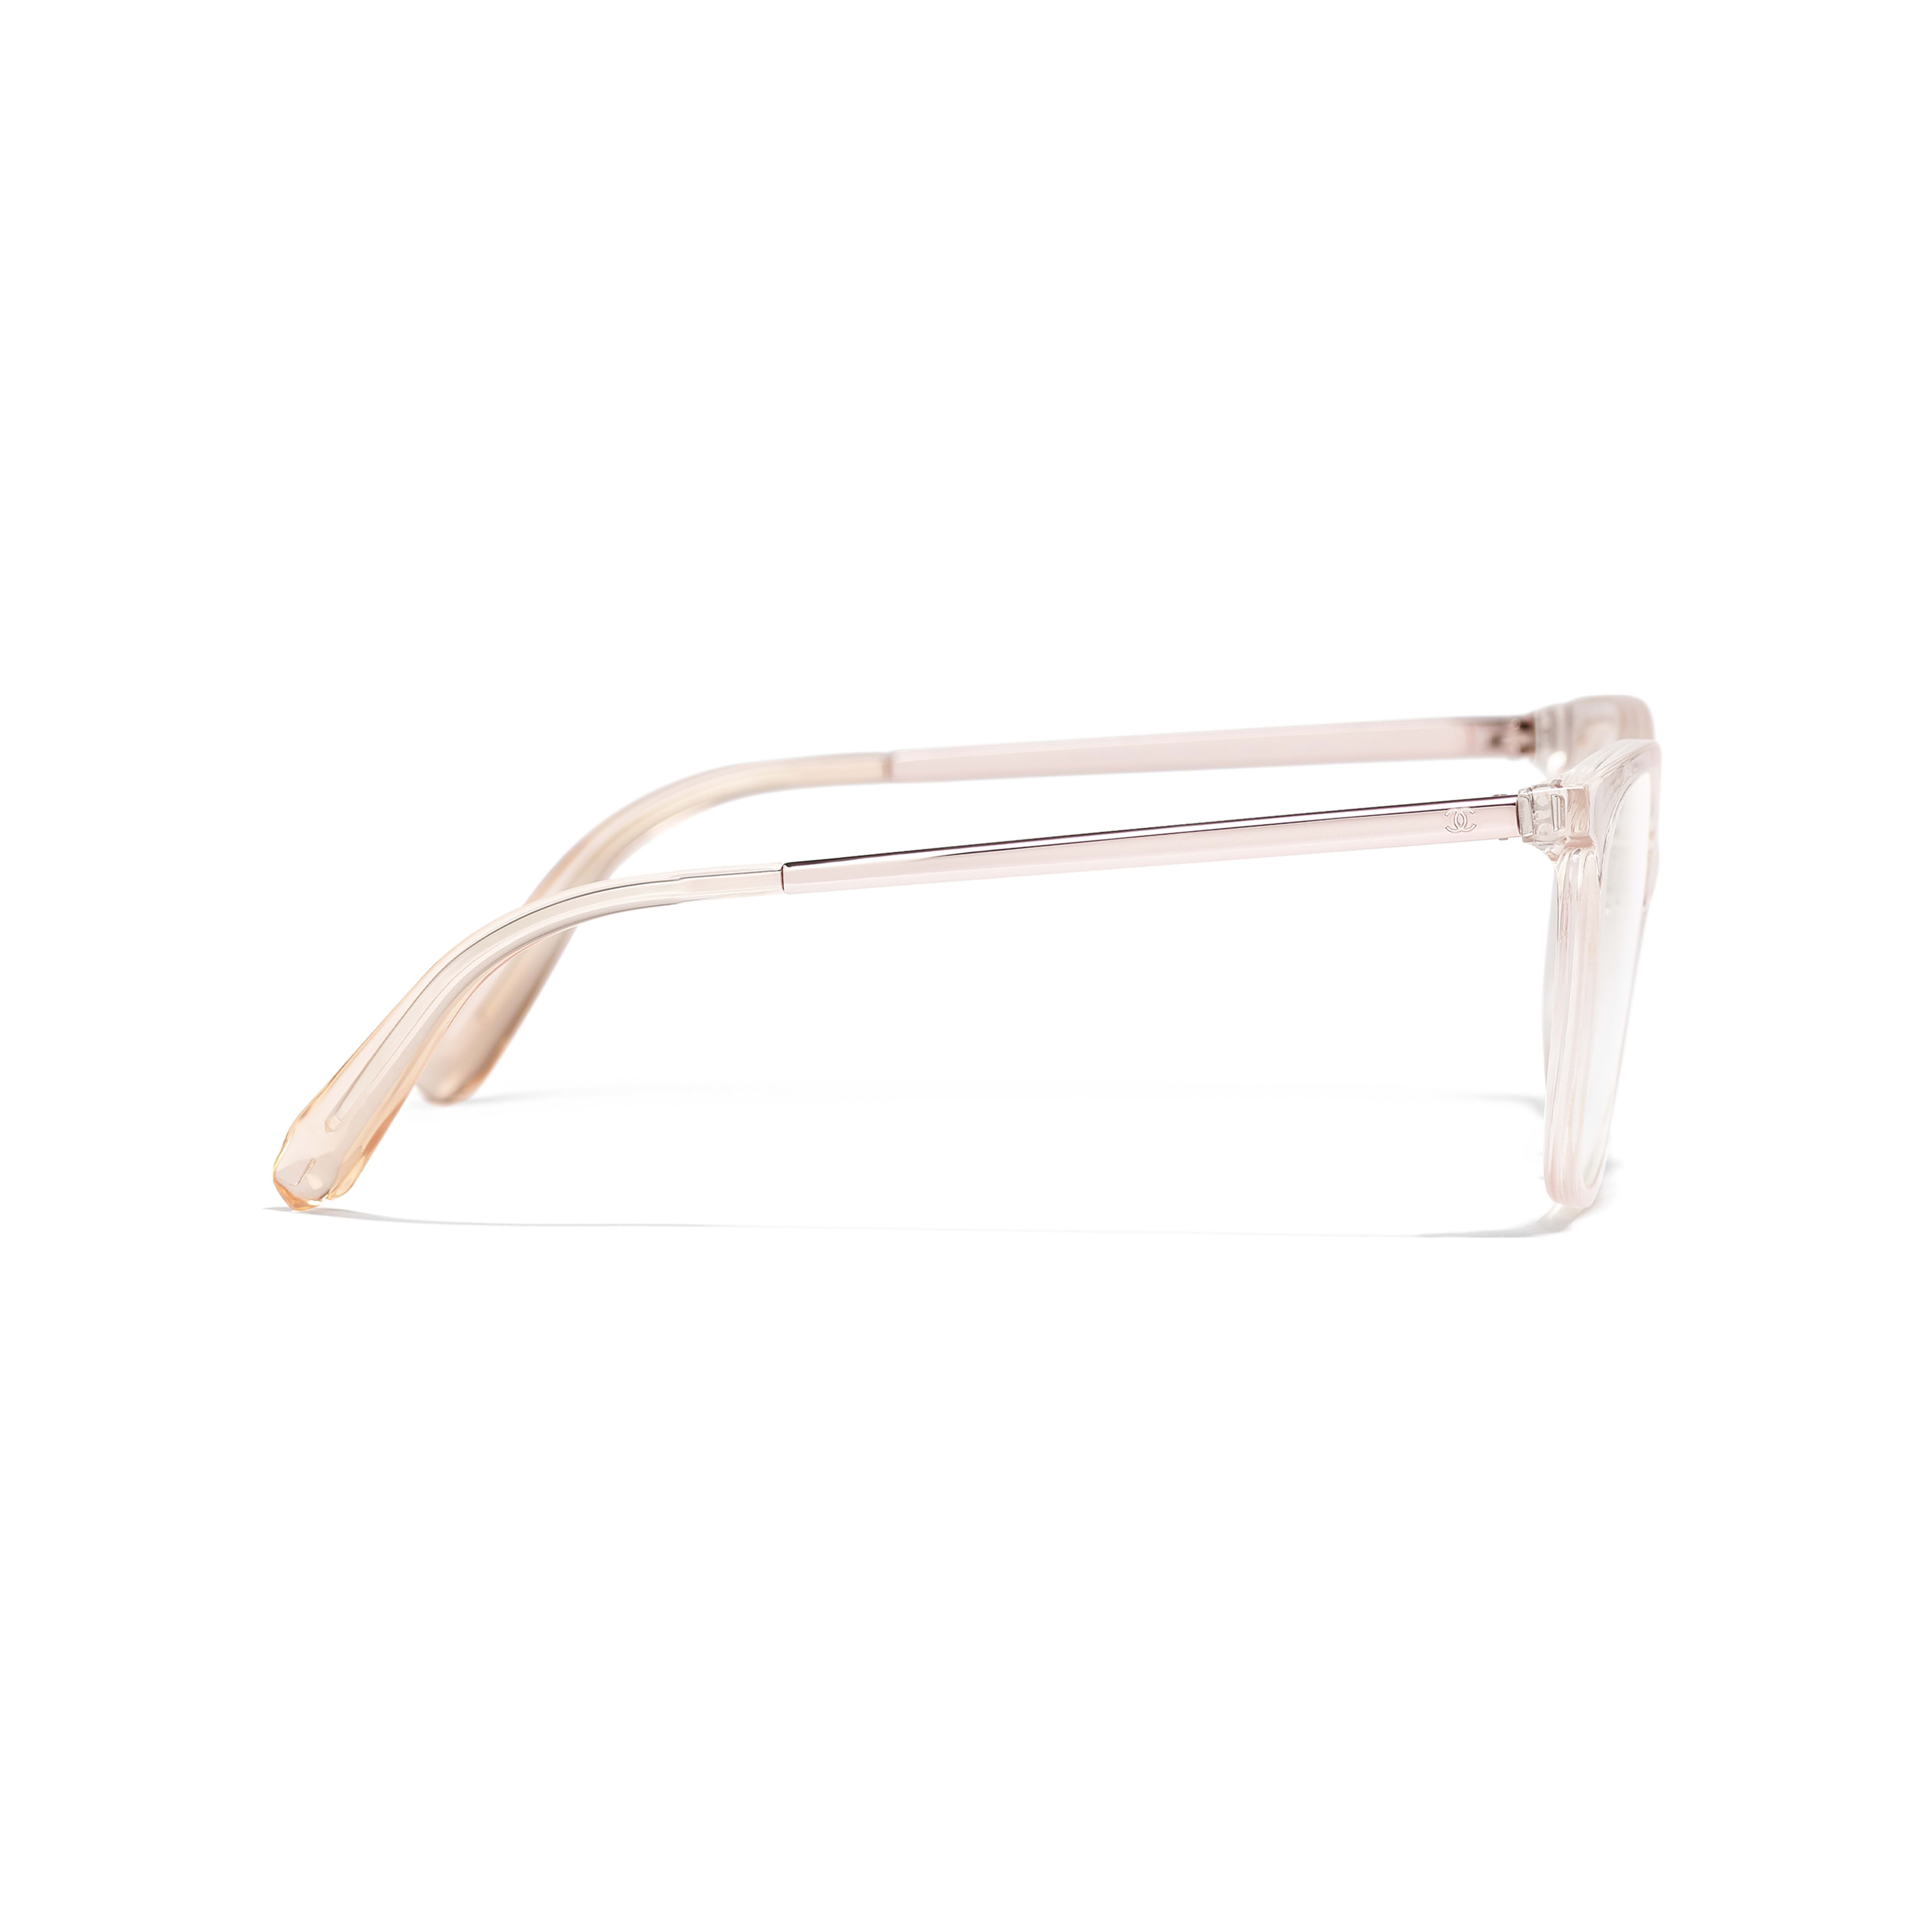 Butterfly Eyeglasses - Pink - Acetate & Metal - Other view - see full sized version